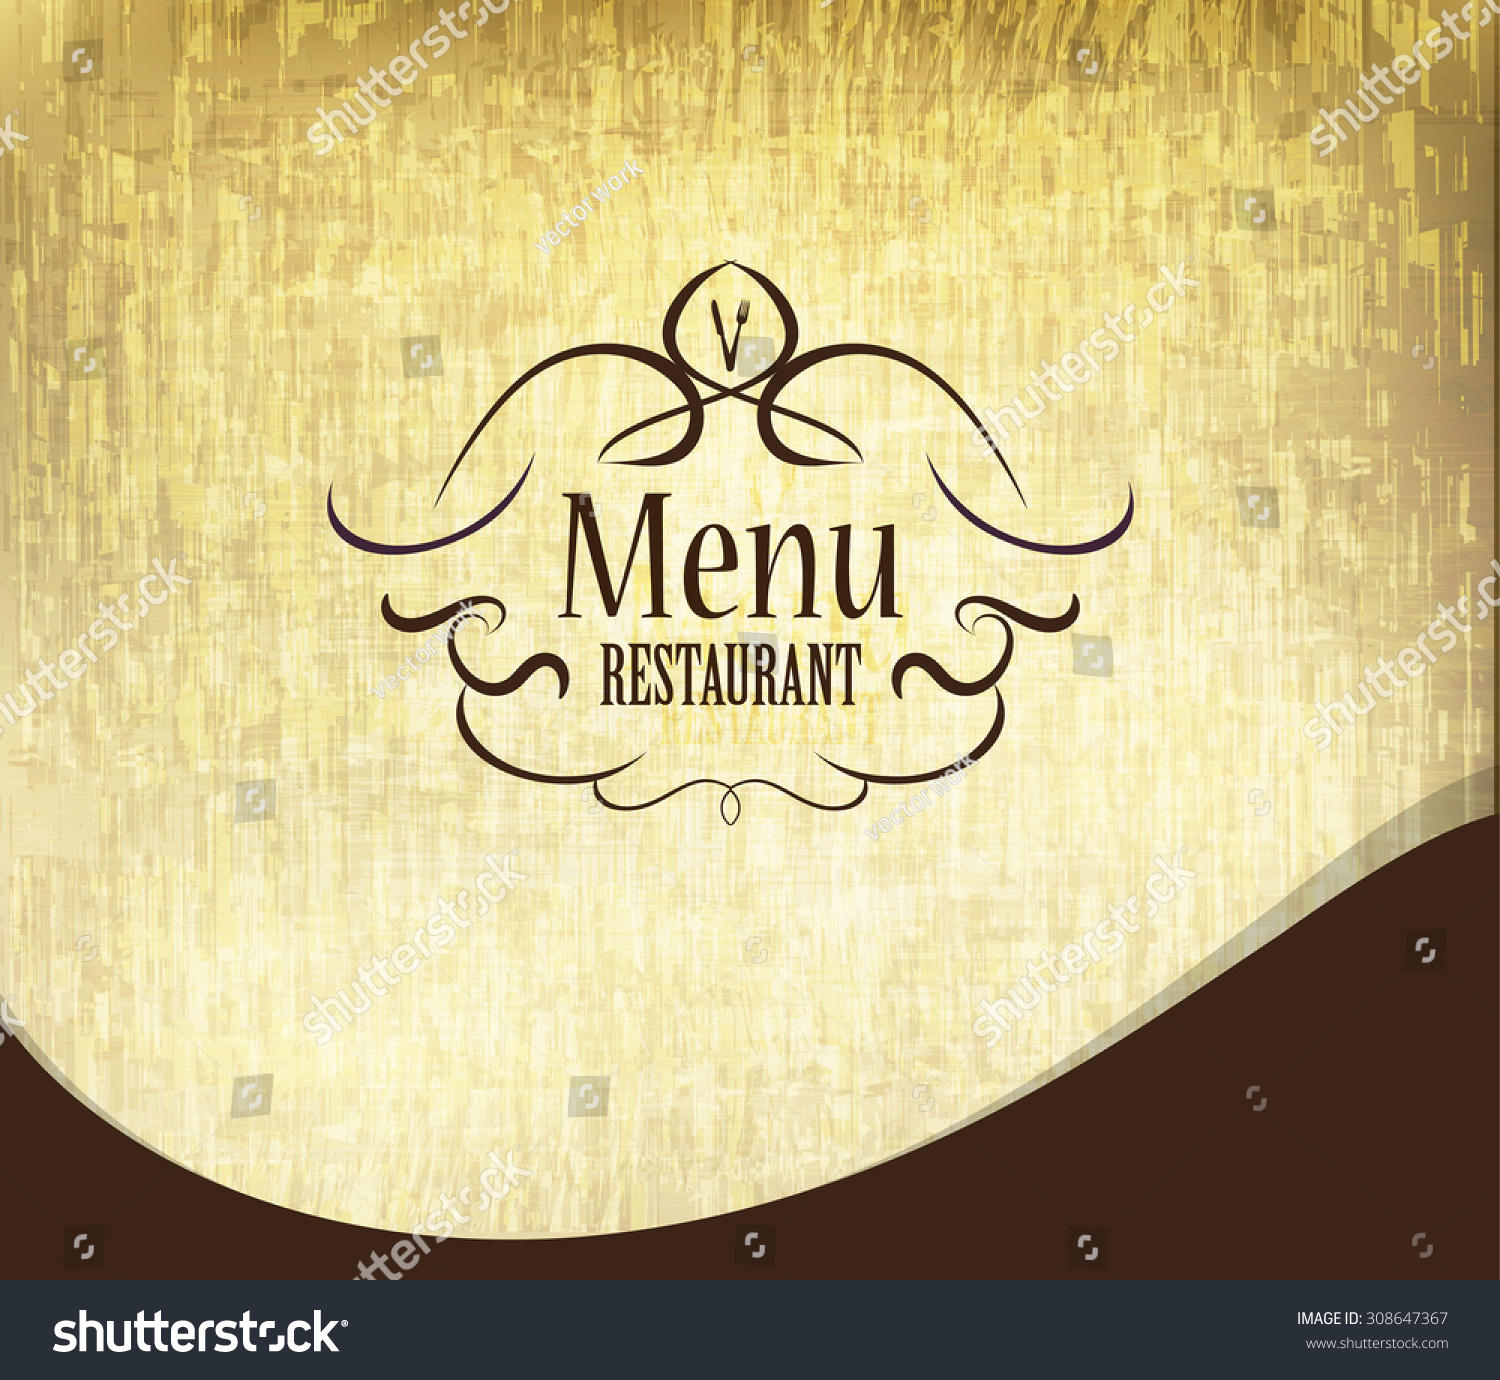 retro restaurant menu first page design stock vector 308647367 retro restaurant menu first page design grunge style